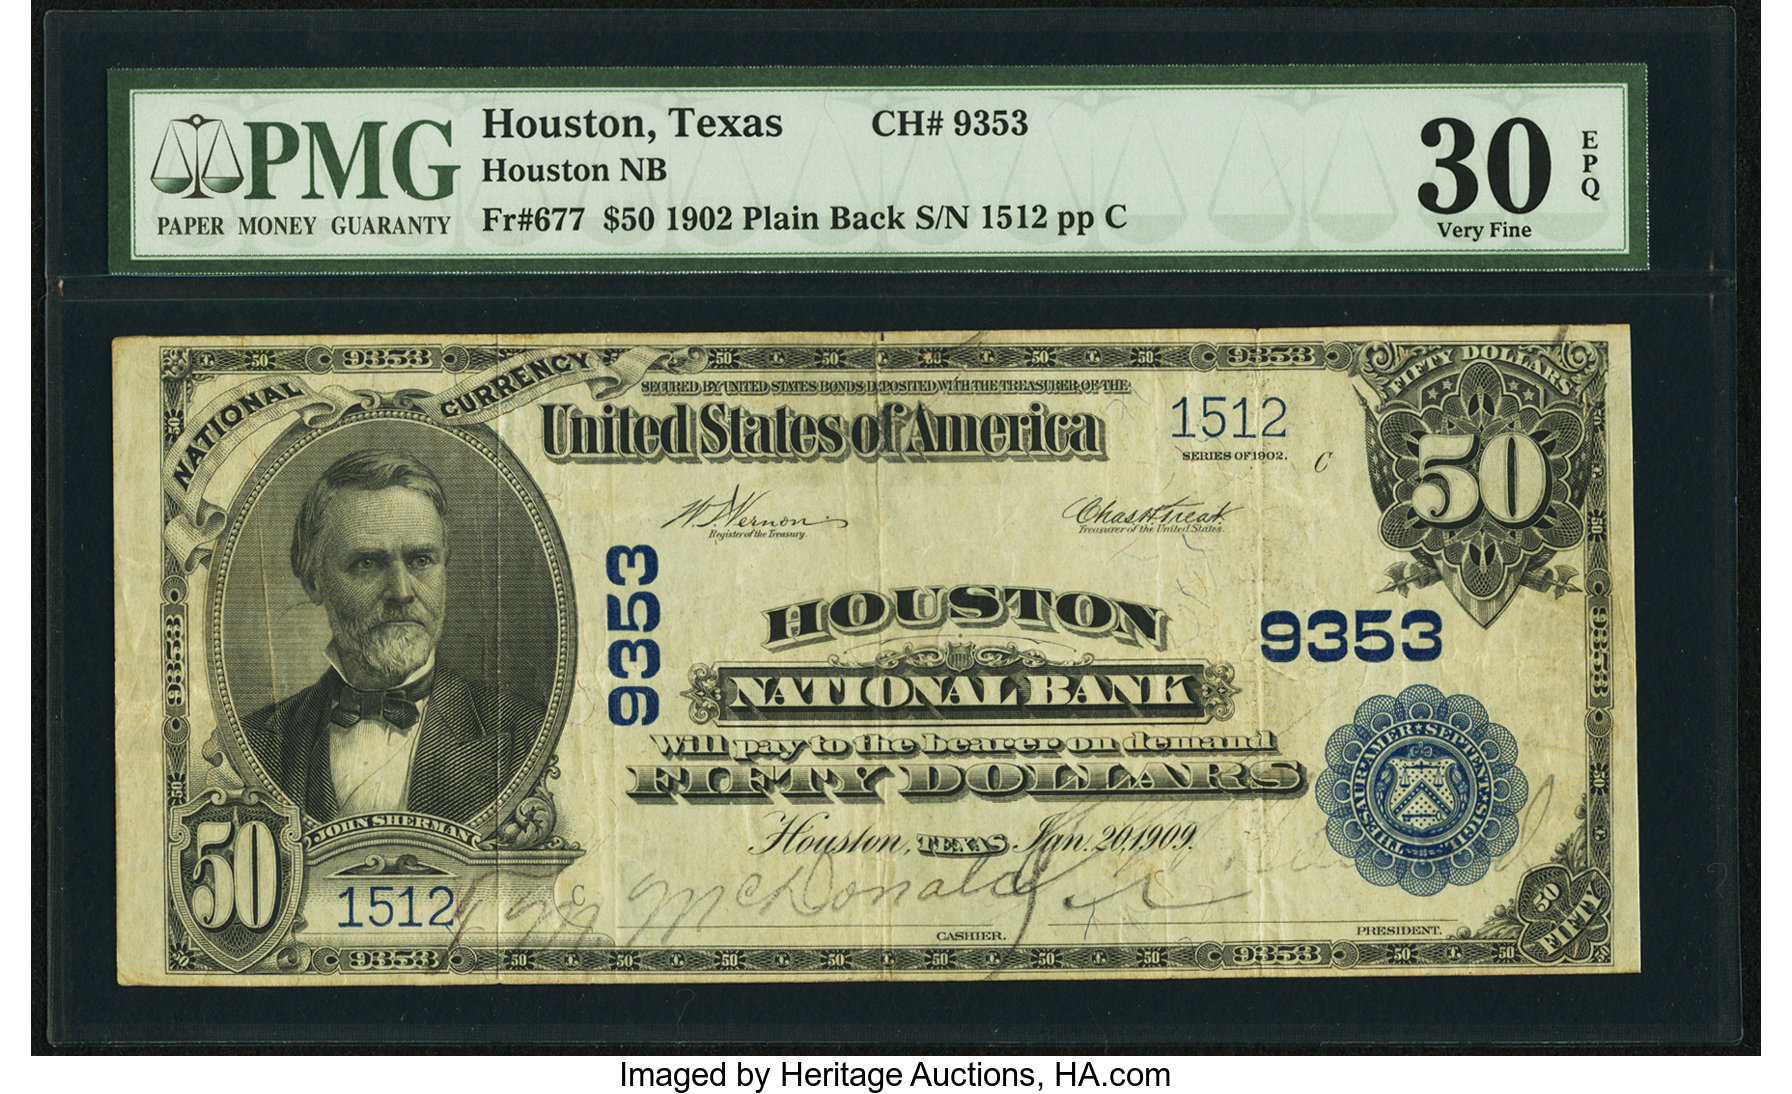 sample image for 1902 3rd Charter Period $50  Plain Back 3rd Issue (Fr.# 677)